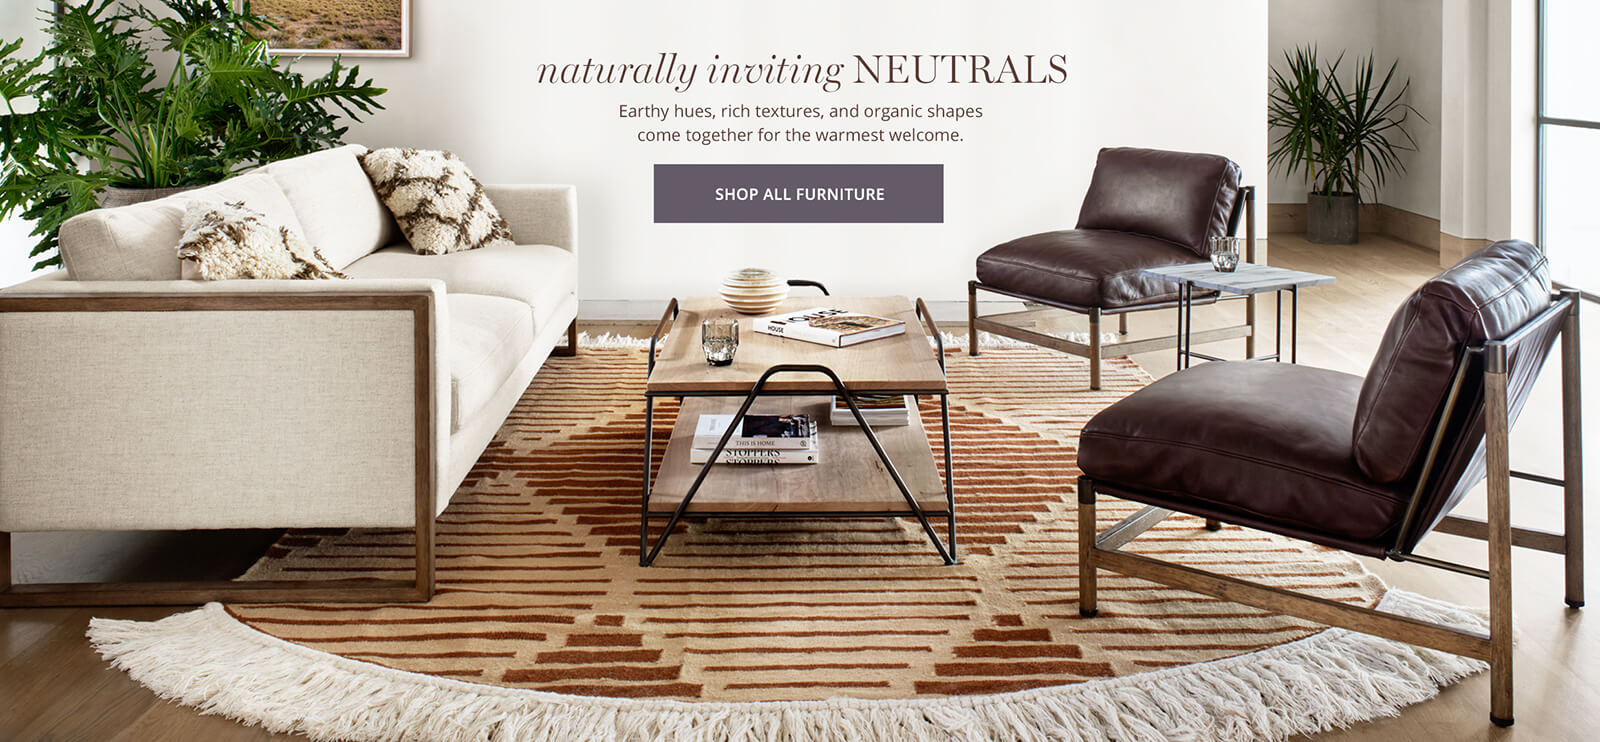 Naturally Inviting Neutrals